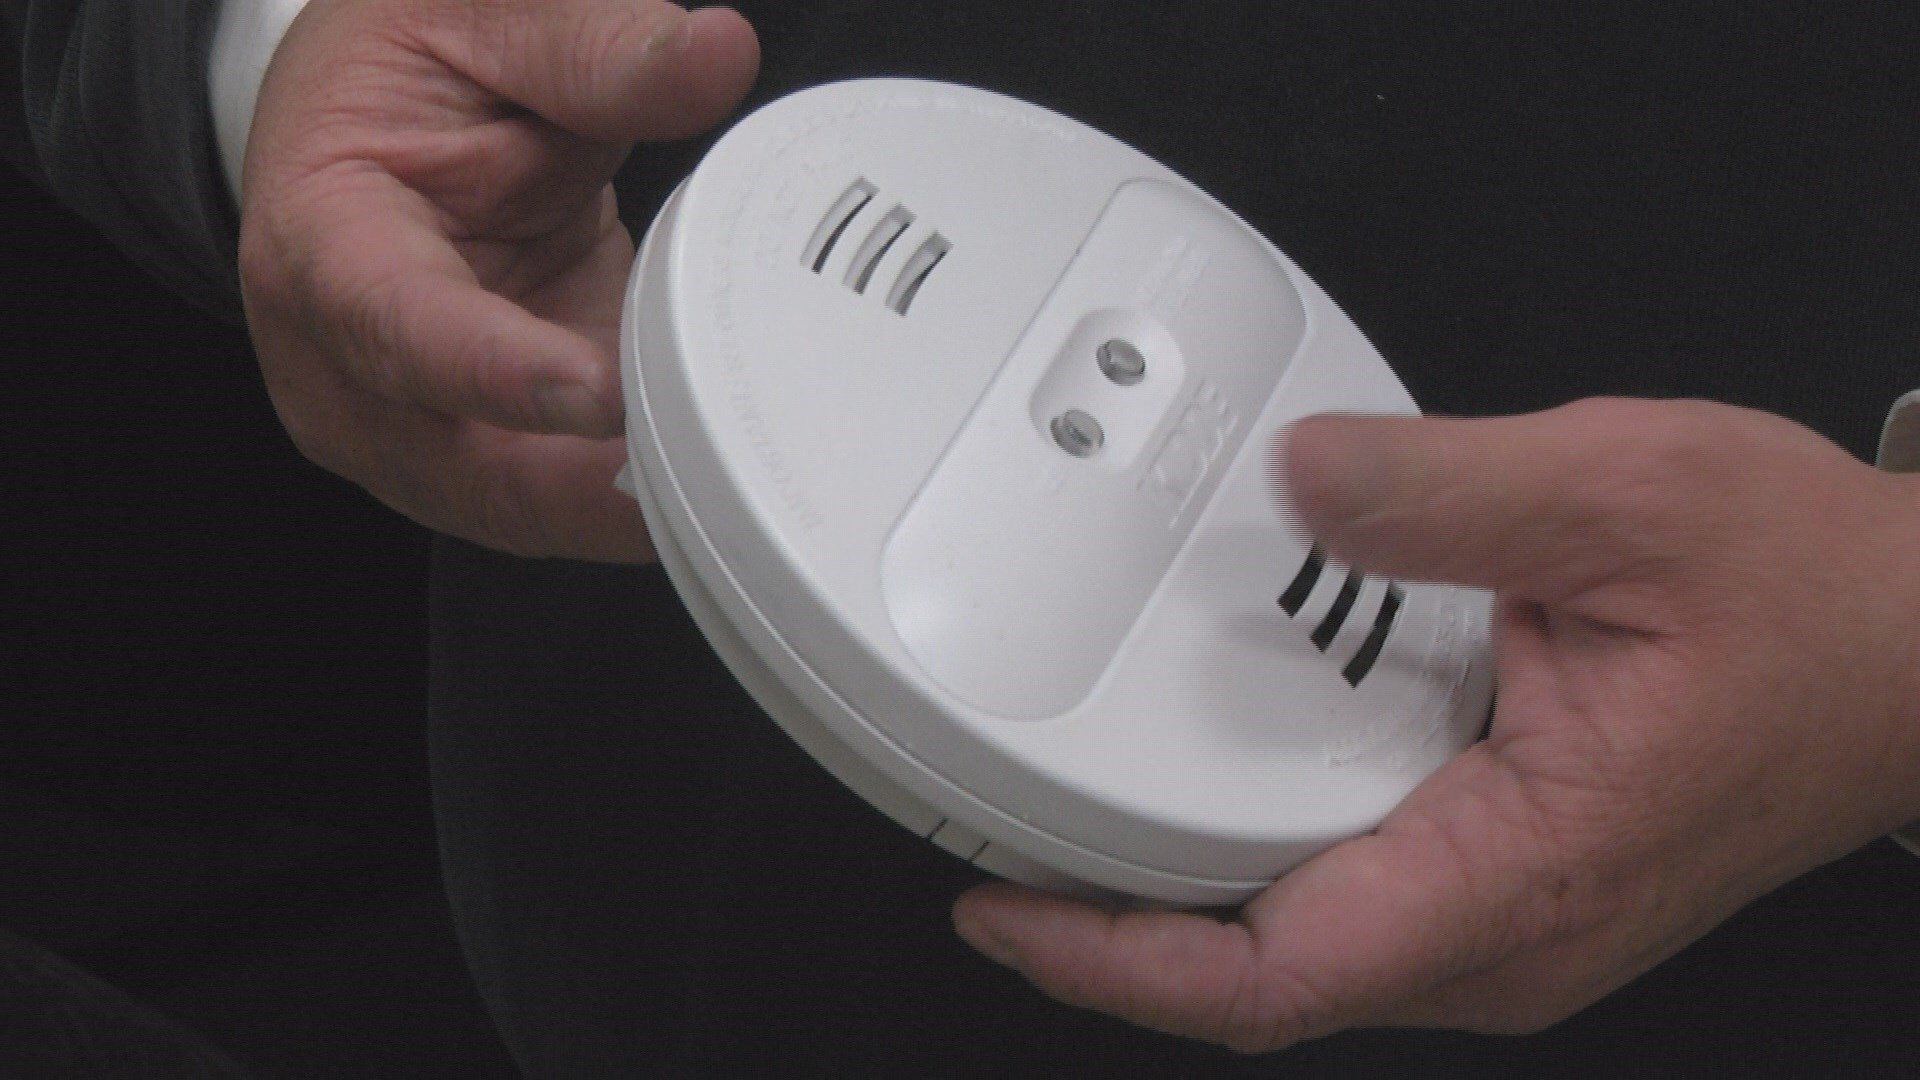 Time change serves as fire safety reminder